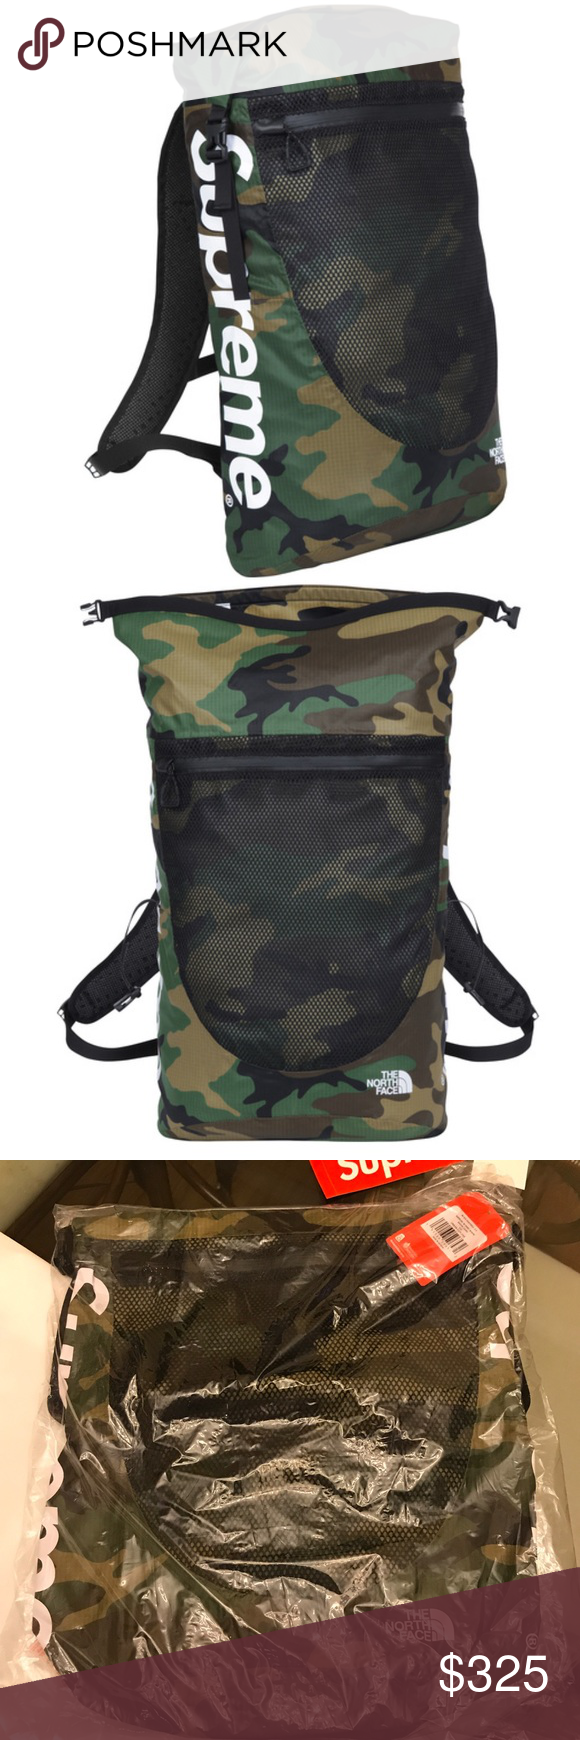 18b57b07 NWT Supreme SS17 North Face Woodland Camo Backpack Supreme The North Face  Waterproof Backpack 210D double ripstop nylon with double side PU coating.